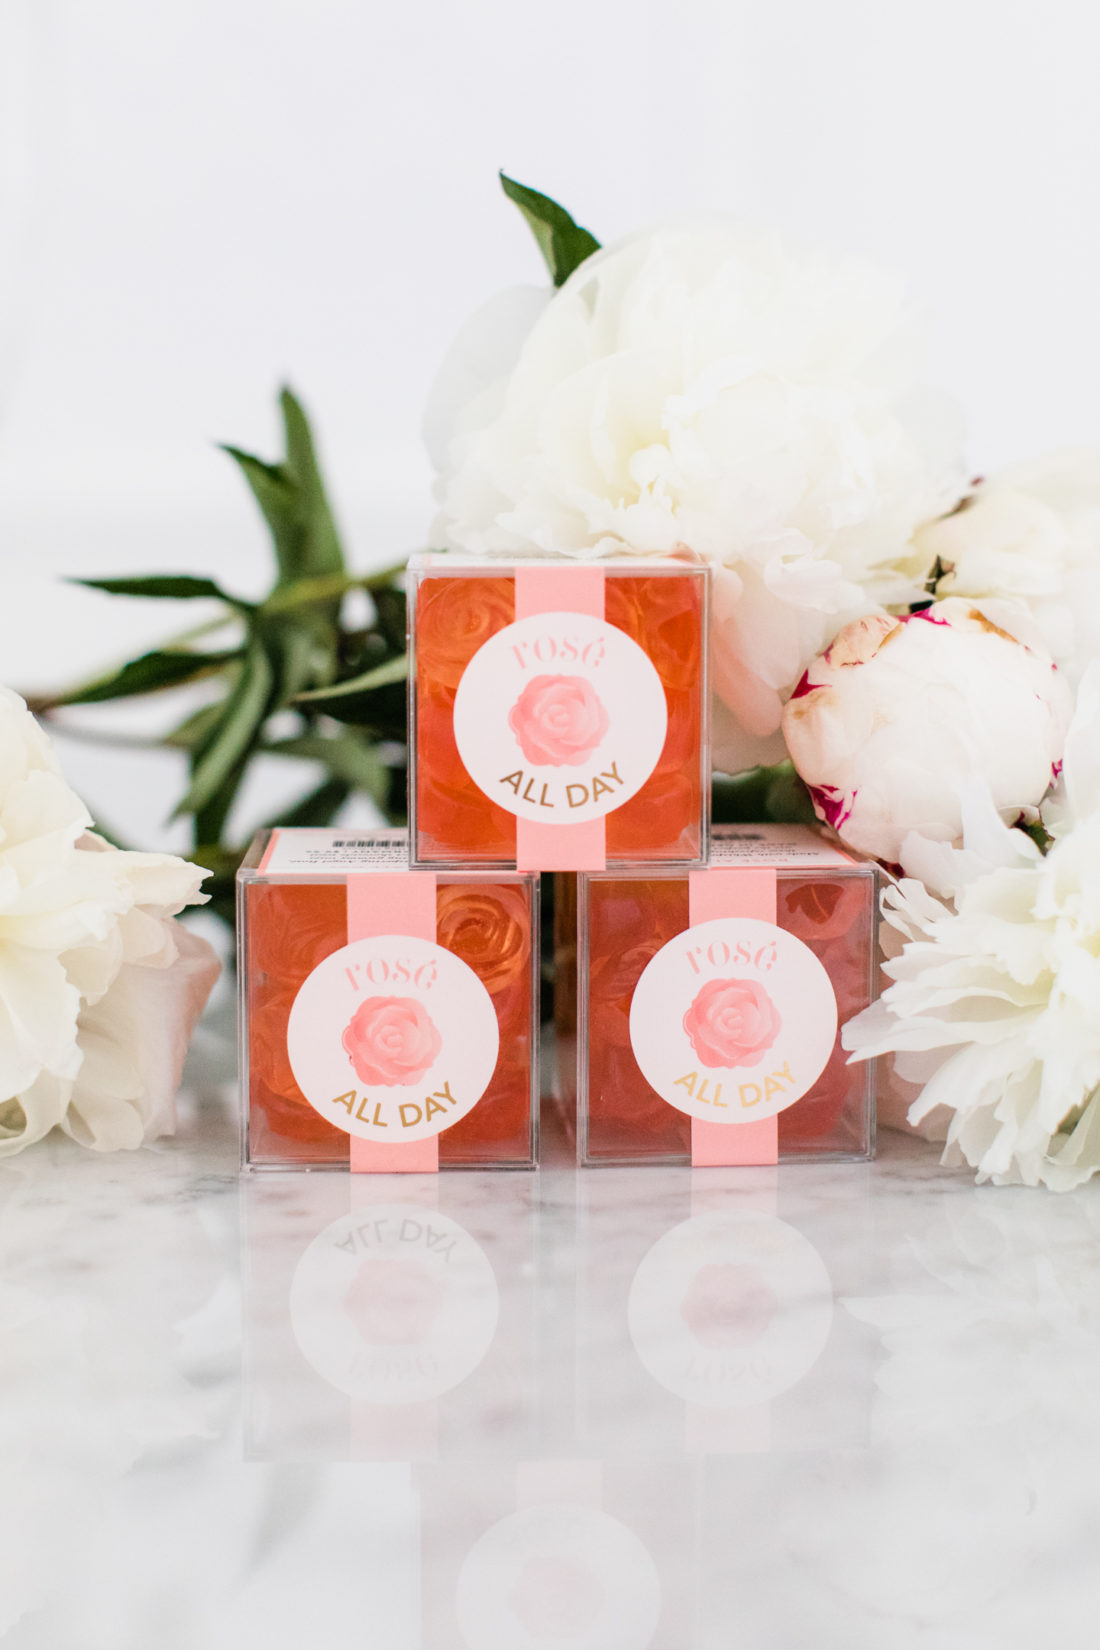 Rosé gummy favors are offered to guests as a parting gift after Eva Amurri Martino's Rosé Tasting party at her Connecticut home